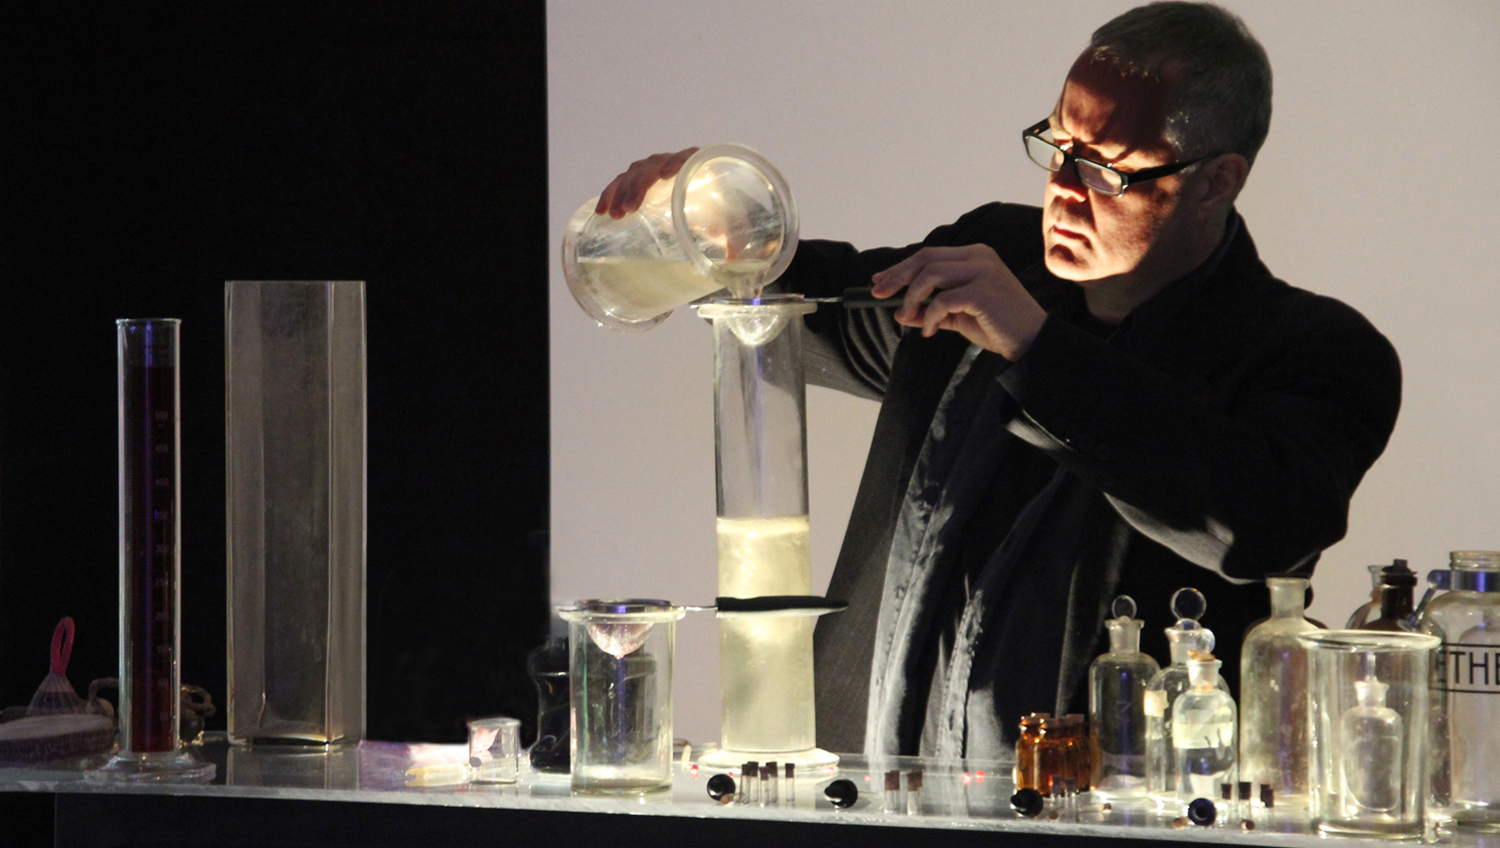 David Teeple performing Alchemy/Filtration.